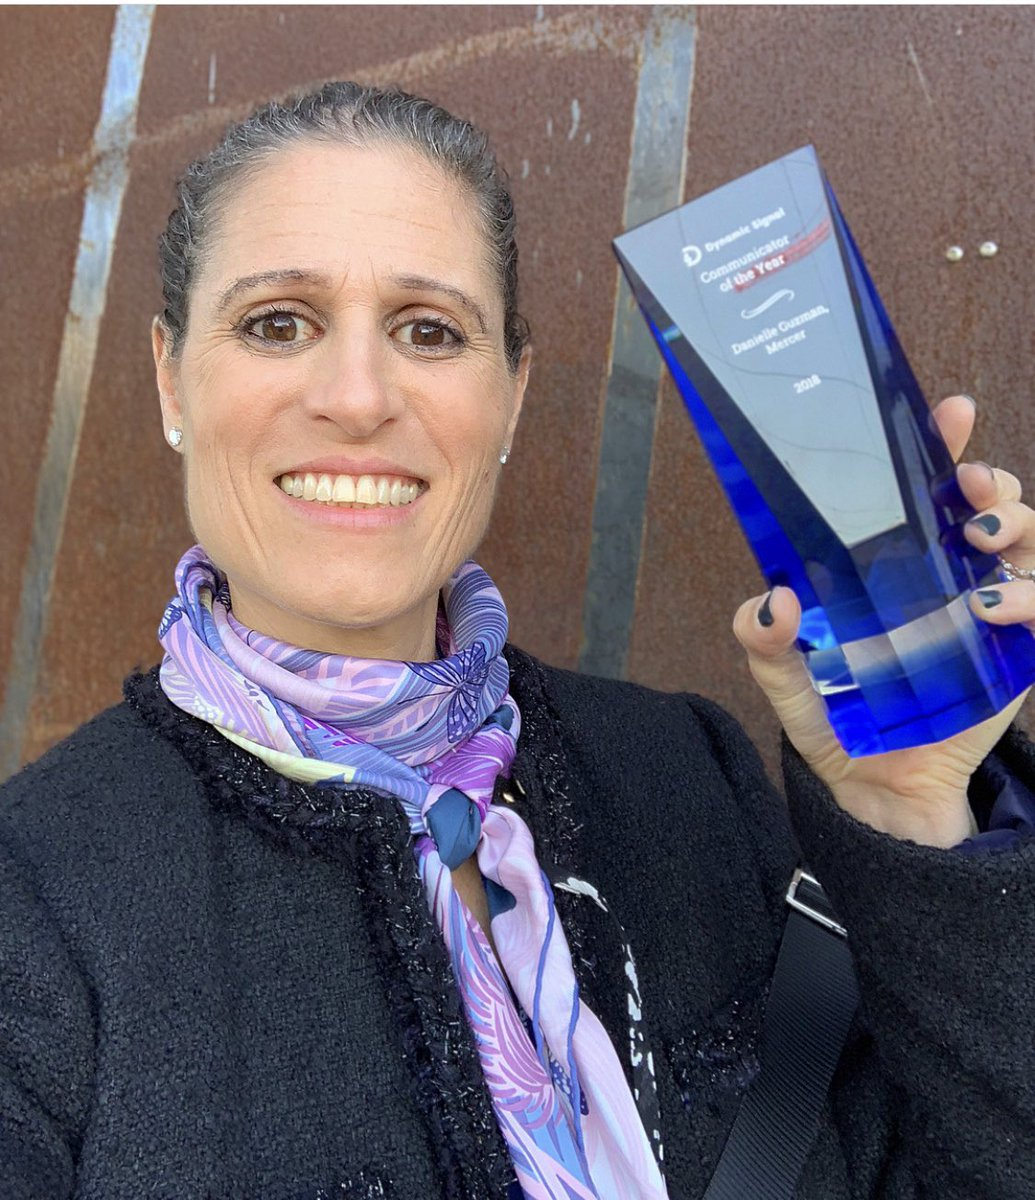 Congratulations to @guzmand for being named 'Communicator of the Year' by @Dynamic_Signal at the #DySiSummit! The whole @ThuliumCo team is proud of you! #Deserved! #leadership #womeninbusiness #SMM #socialmedia #EmployeeAdvocacy<br>http://pic.twitter.com/UoPK0ION0n